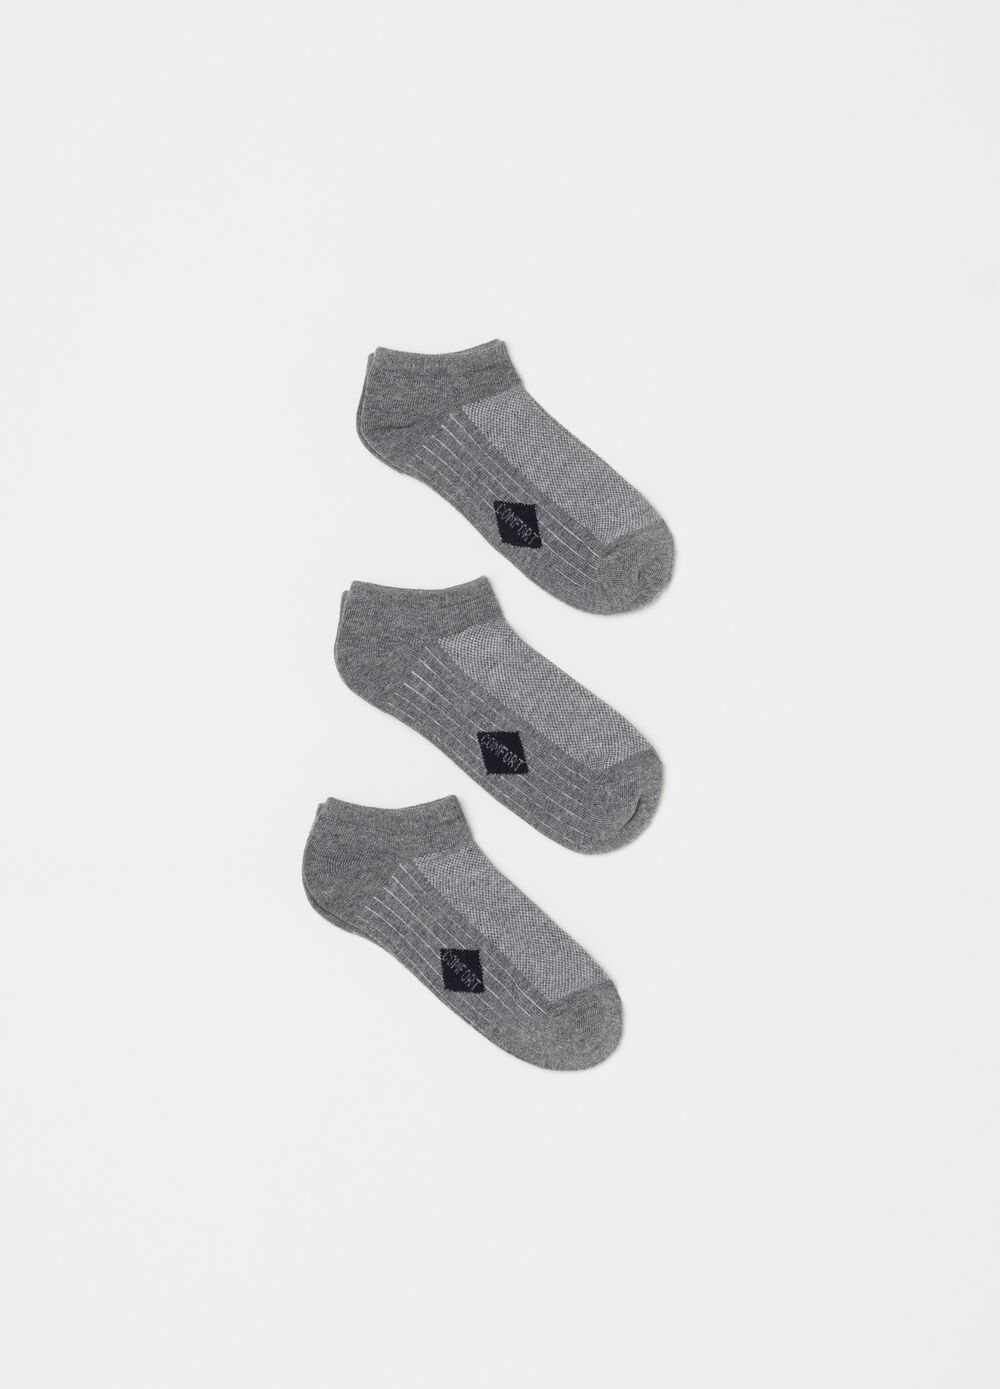 Three-pair pack comfortable ankle socks in jacquard